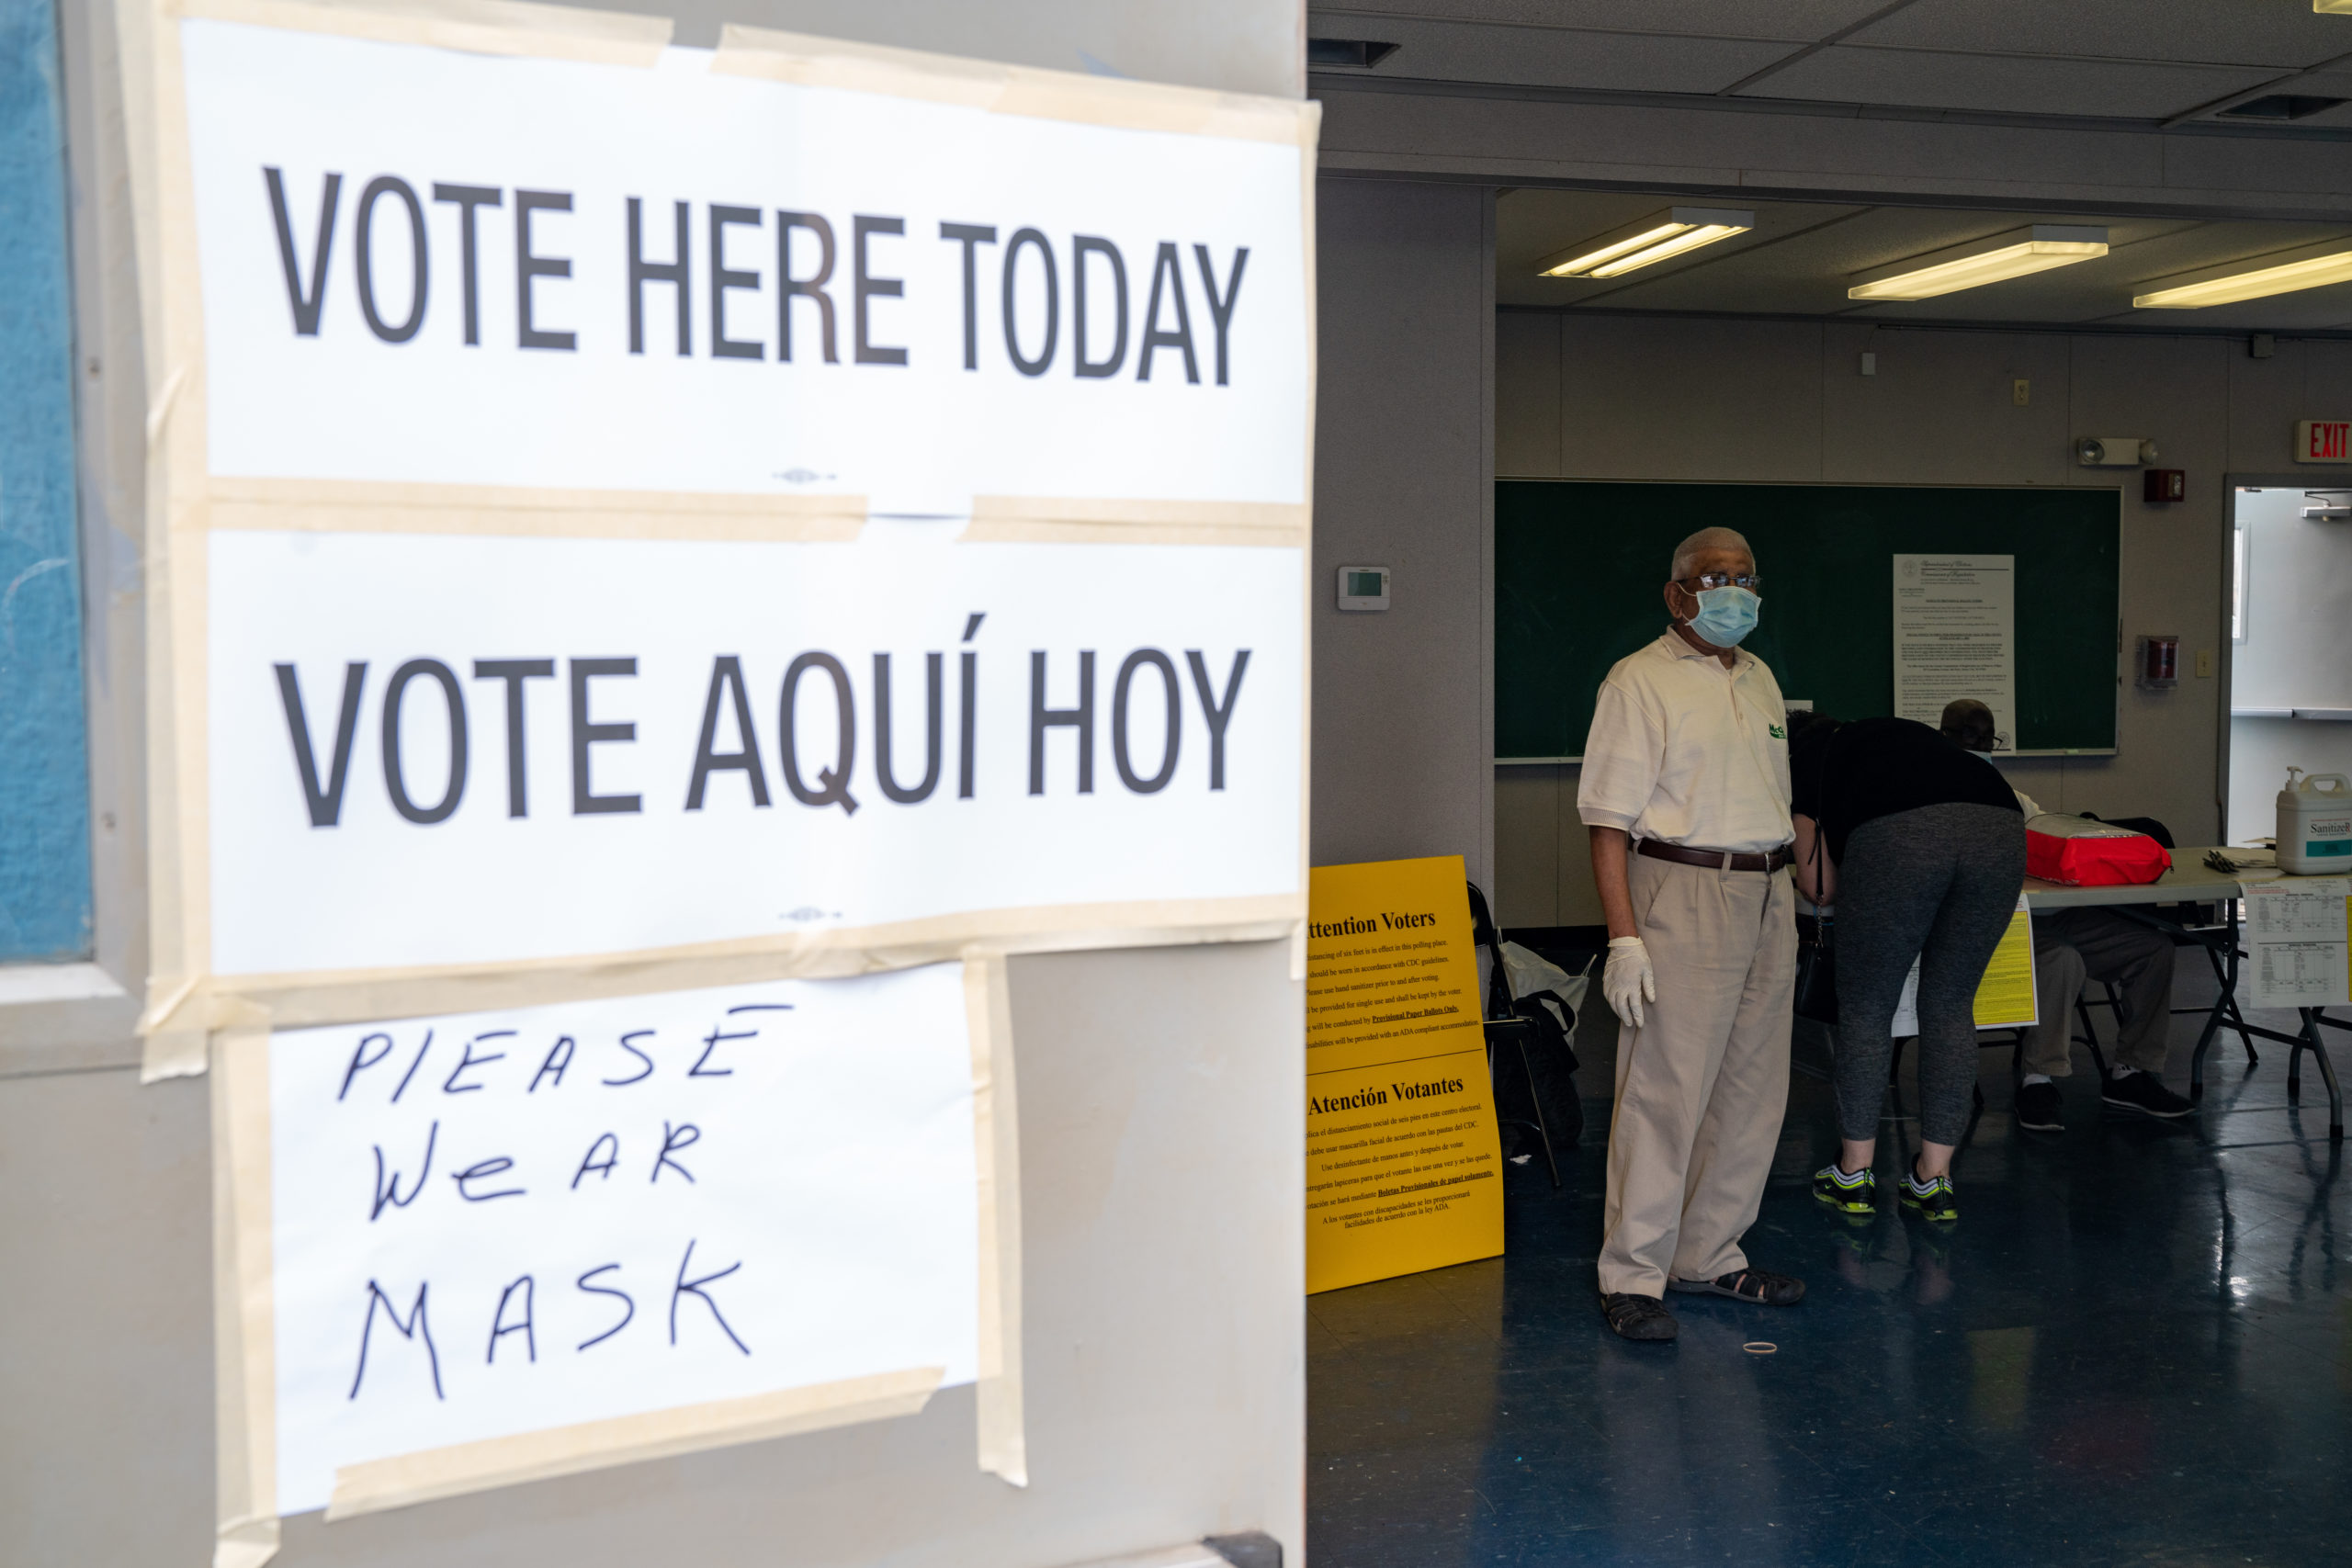 JERSEY CITY, NJ - JULY 07: A poll worker at Liberty High School on July 7, 2020 in Jersey City, New Jersey. New Jersey residents will choose their candidates for president, Senate and House but because of the pandemic most are casting their votes by mail-in ballots. (Photo by David Dee Delgado/Getty Images)